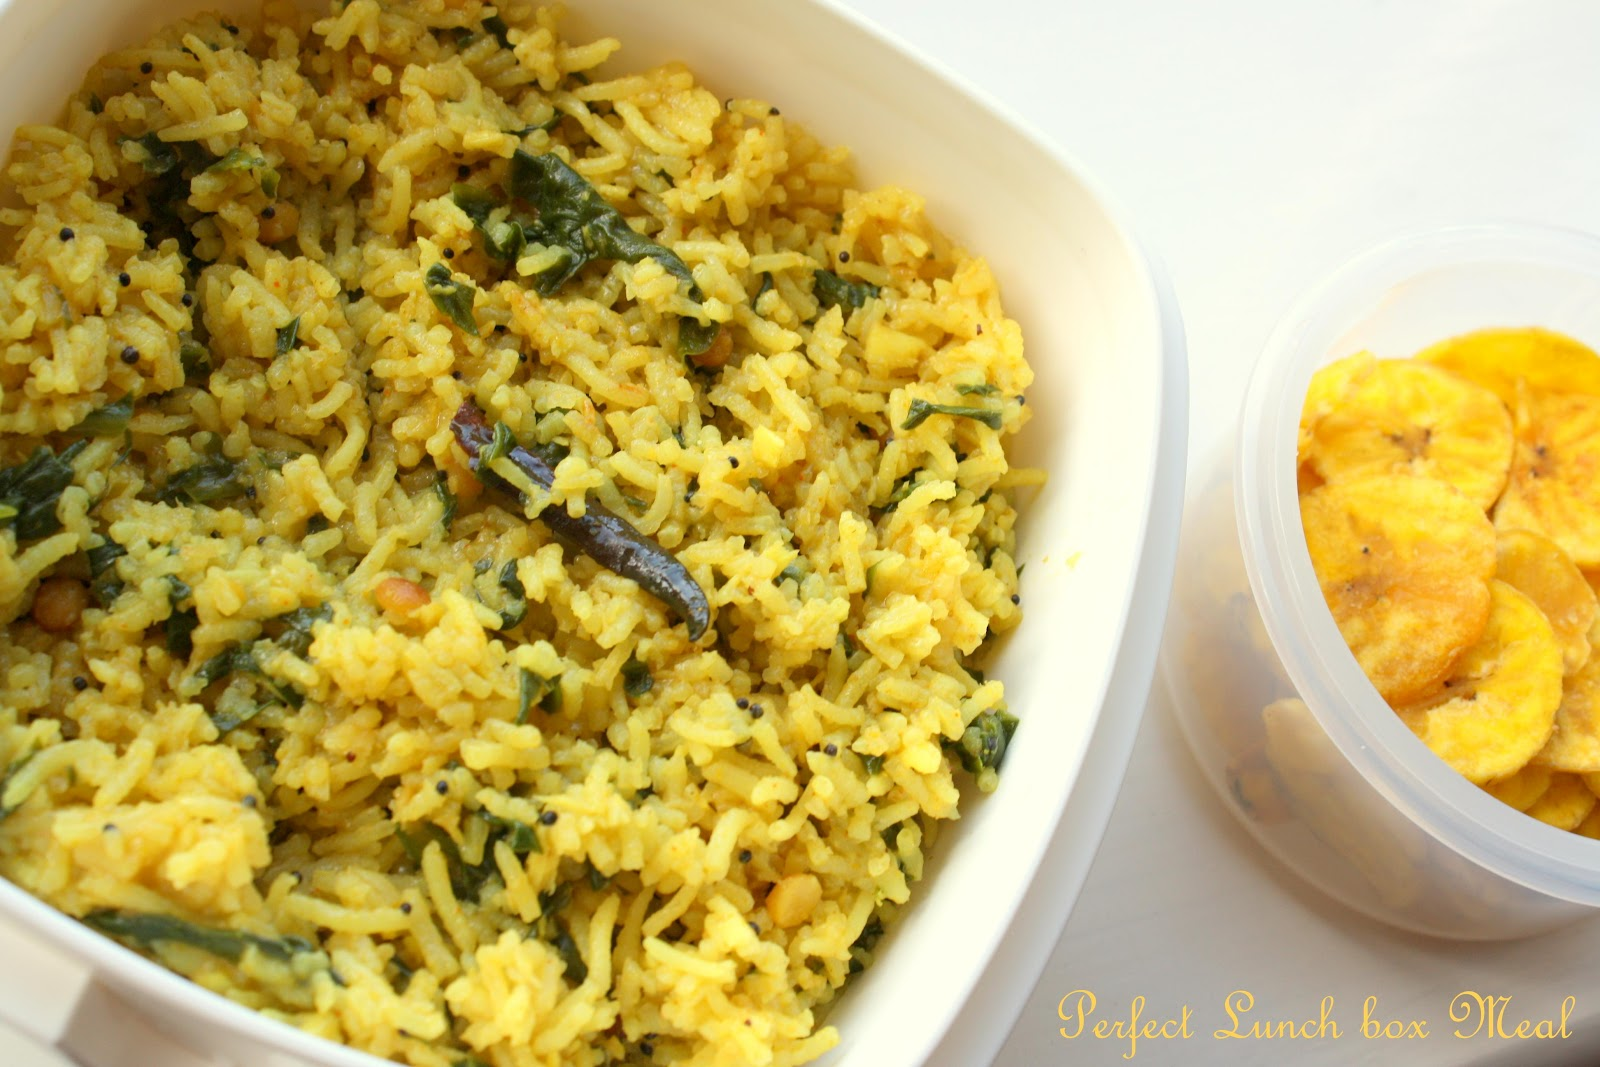 Cook Like Priya Spinach Coconut Rice One Pot Variety Rice Lunch Box Meal